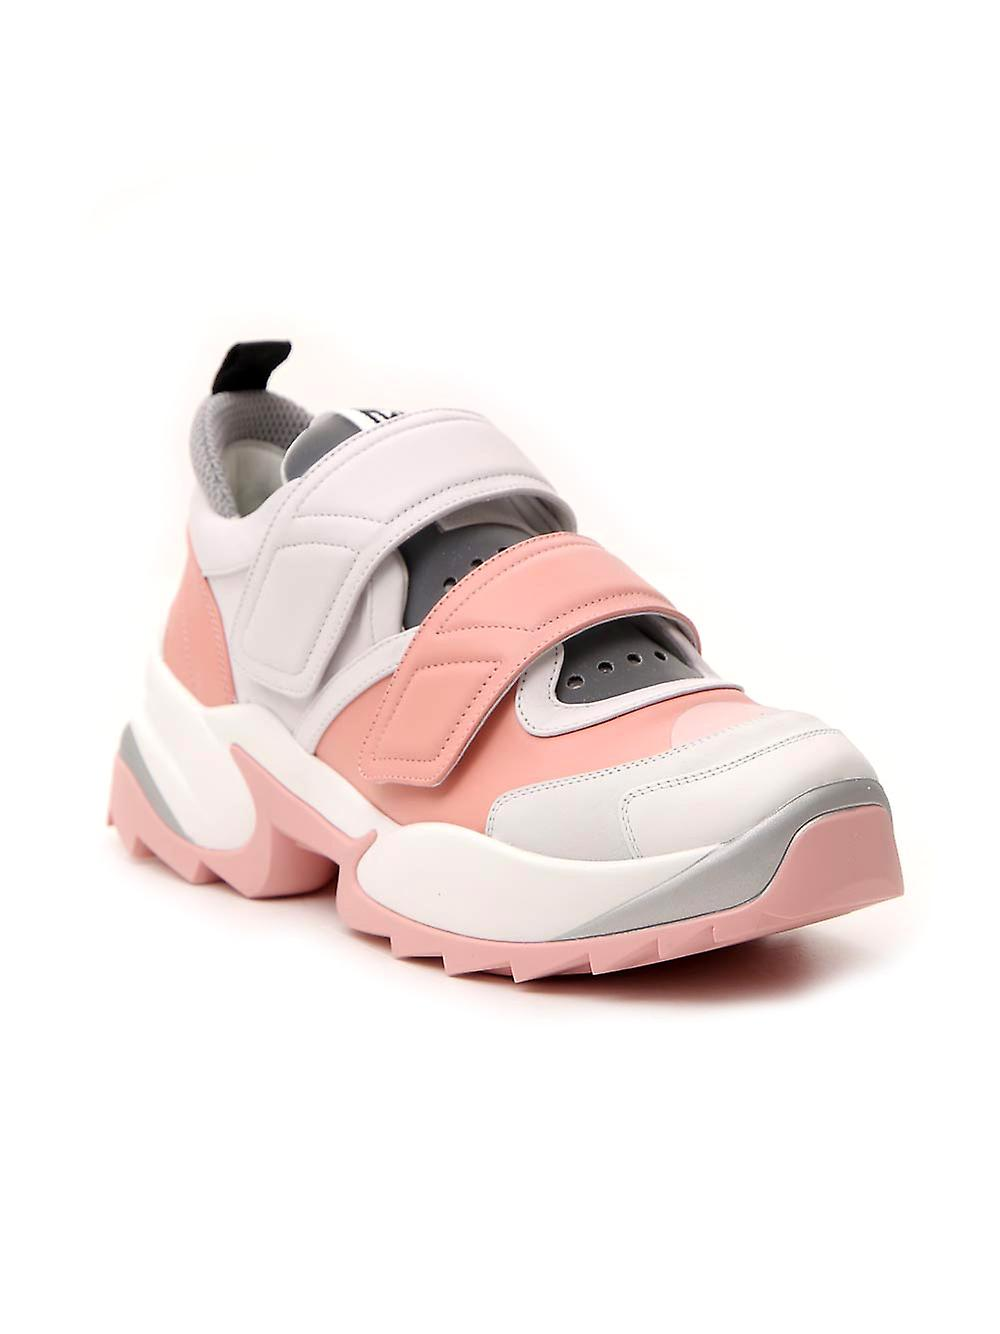 Sergio Rossi A89430mfn8975628 Women-apos;s Pink Leather Sneakers - Remise particulière